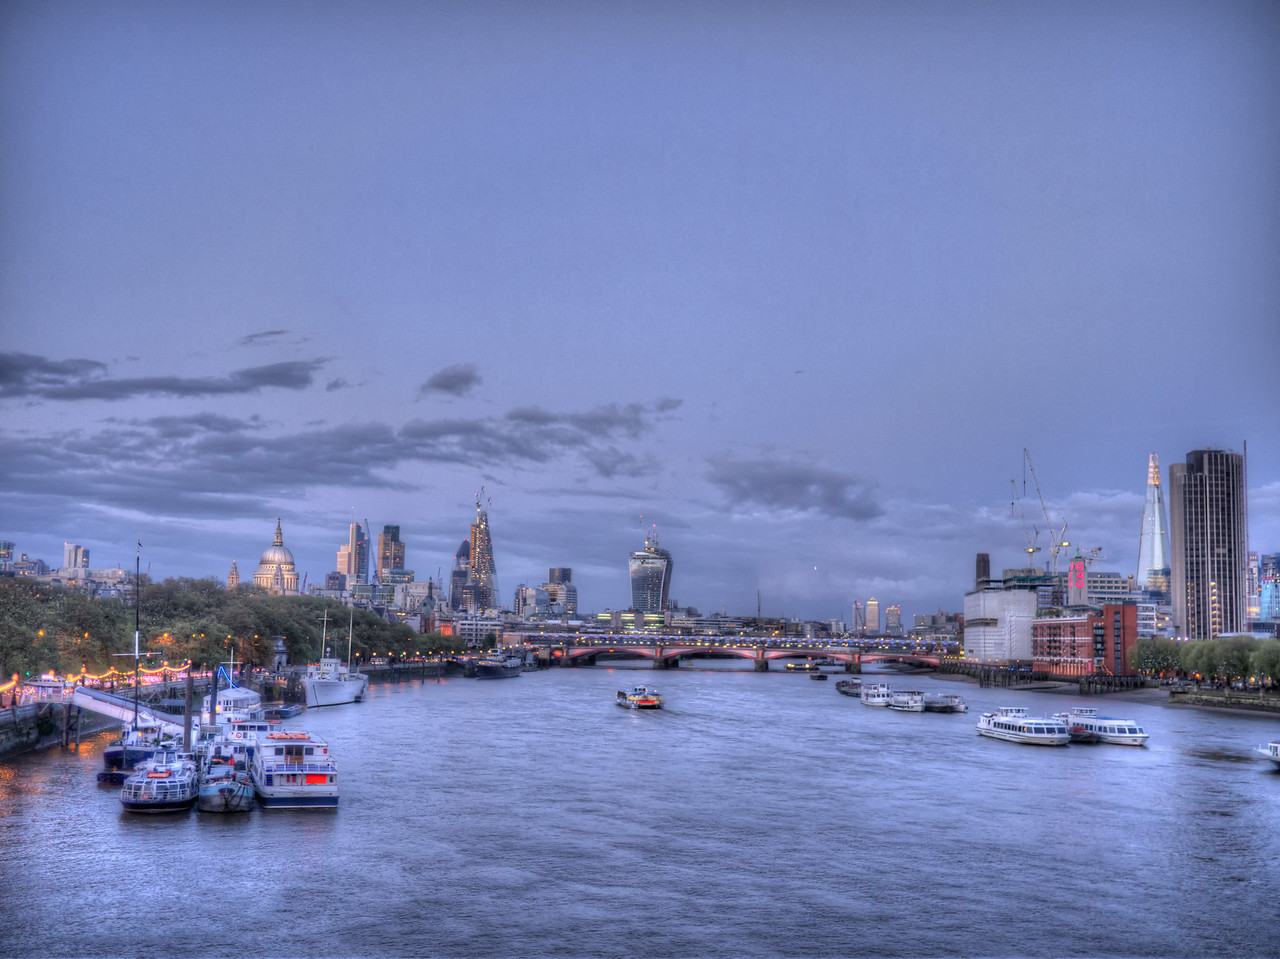 London and the Thames